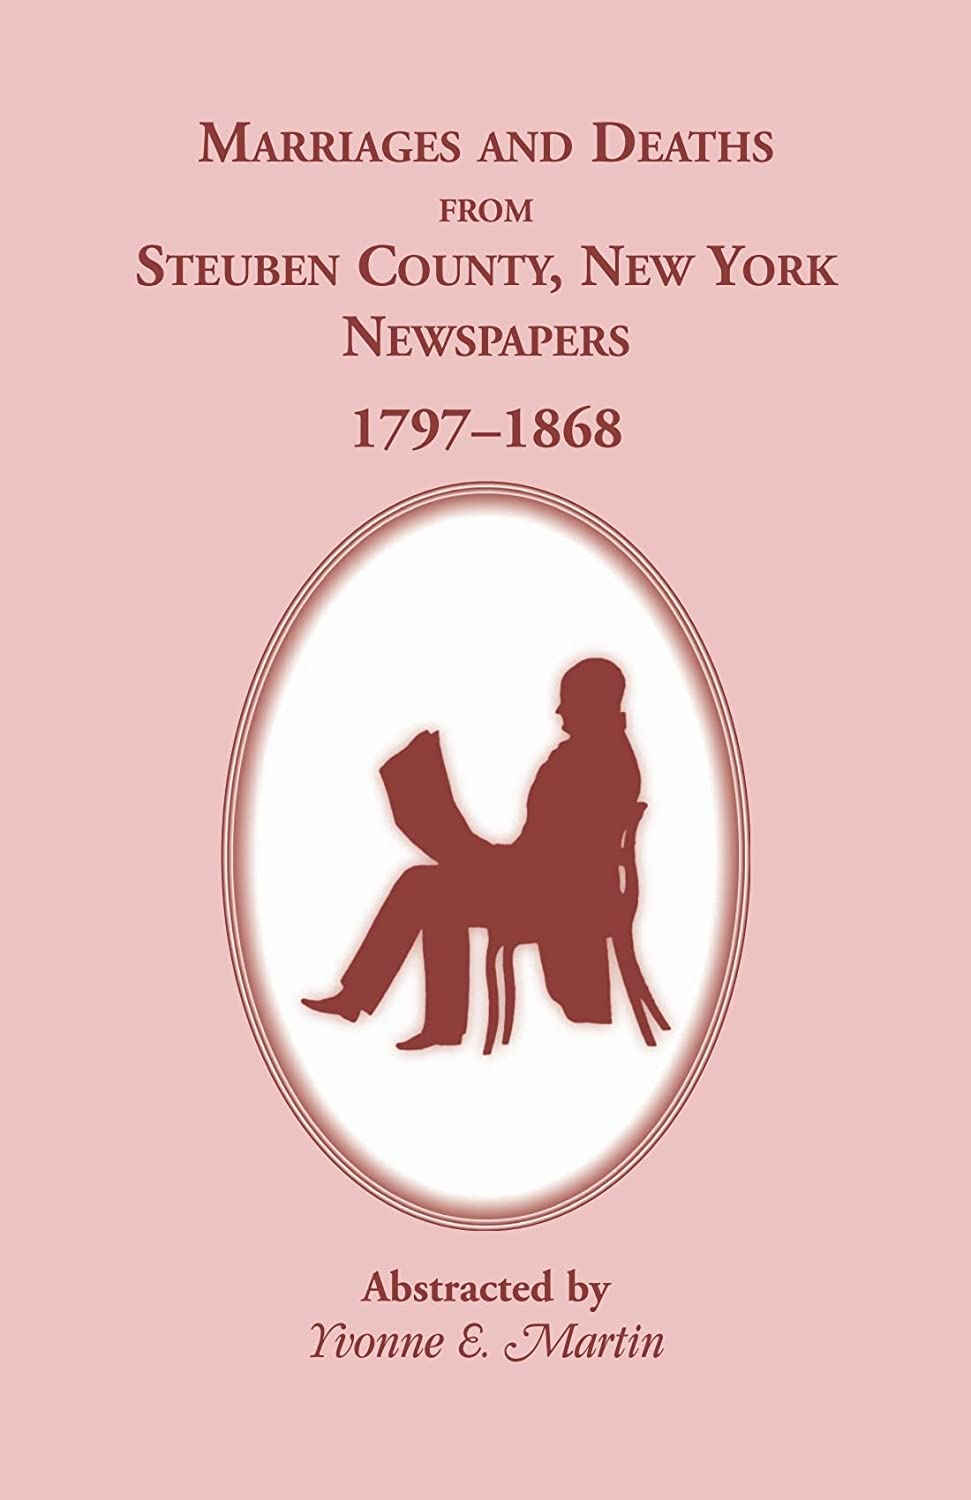 Marriages and Deaths from Steuben County, New York, Newspapers, 1797-1868 Yvonne E. Martin